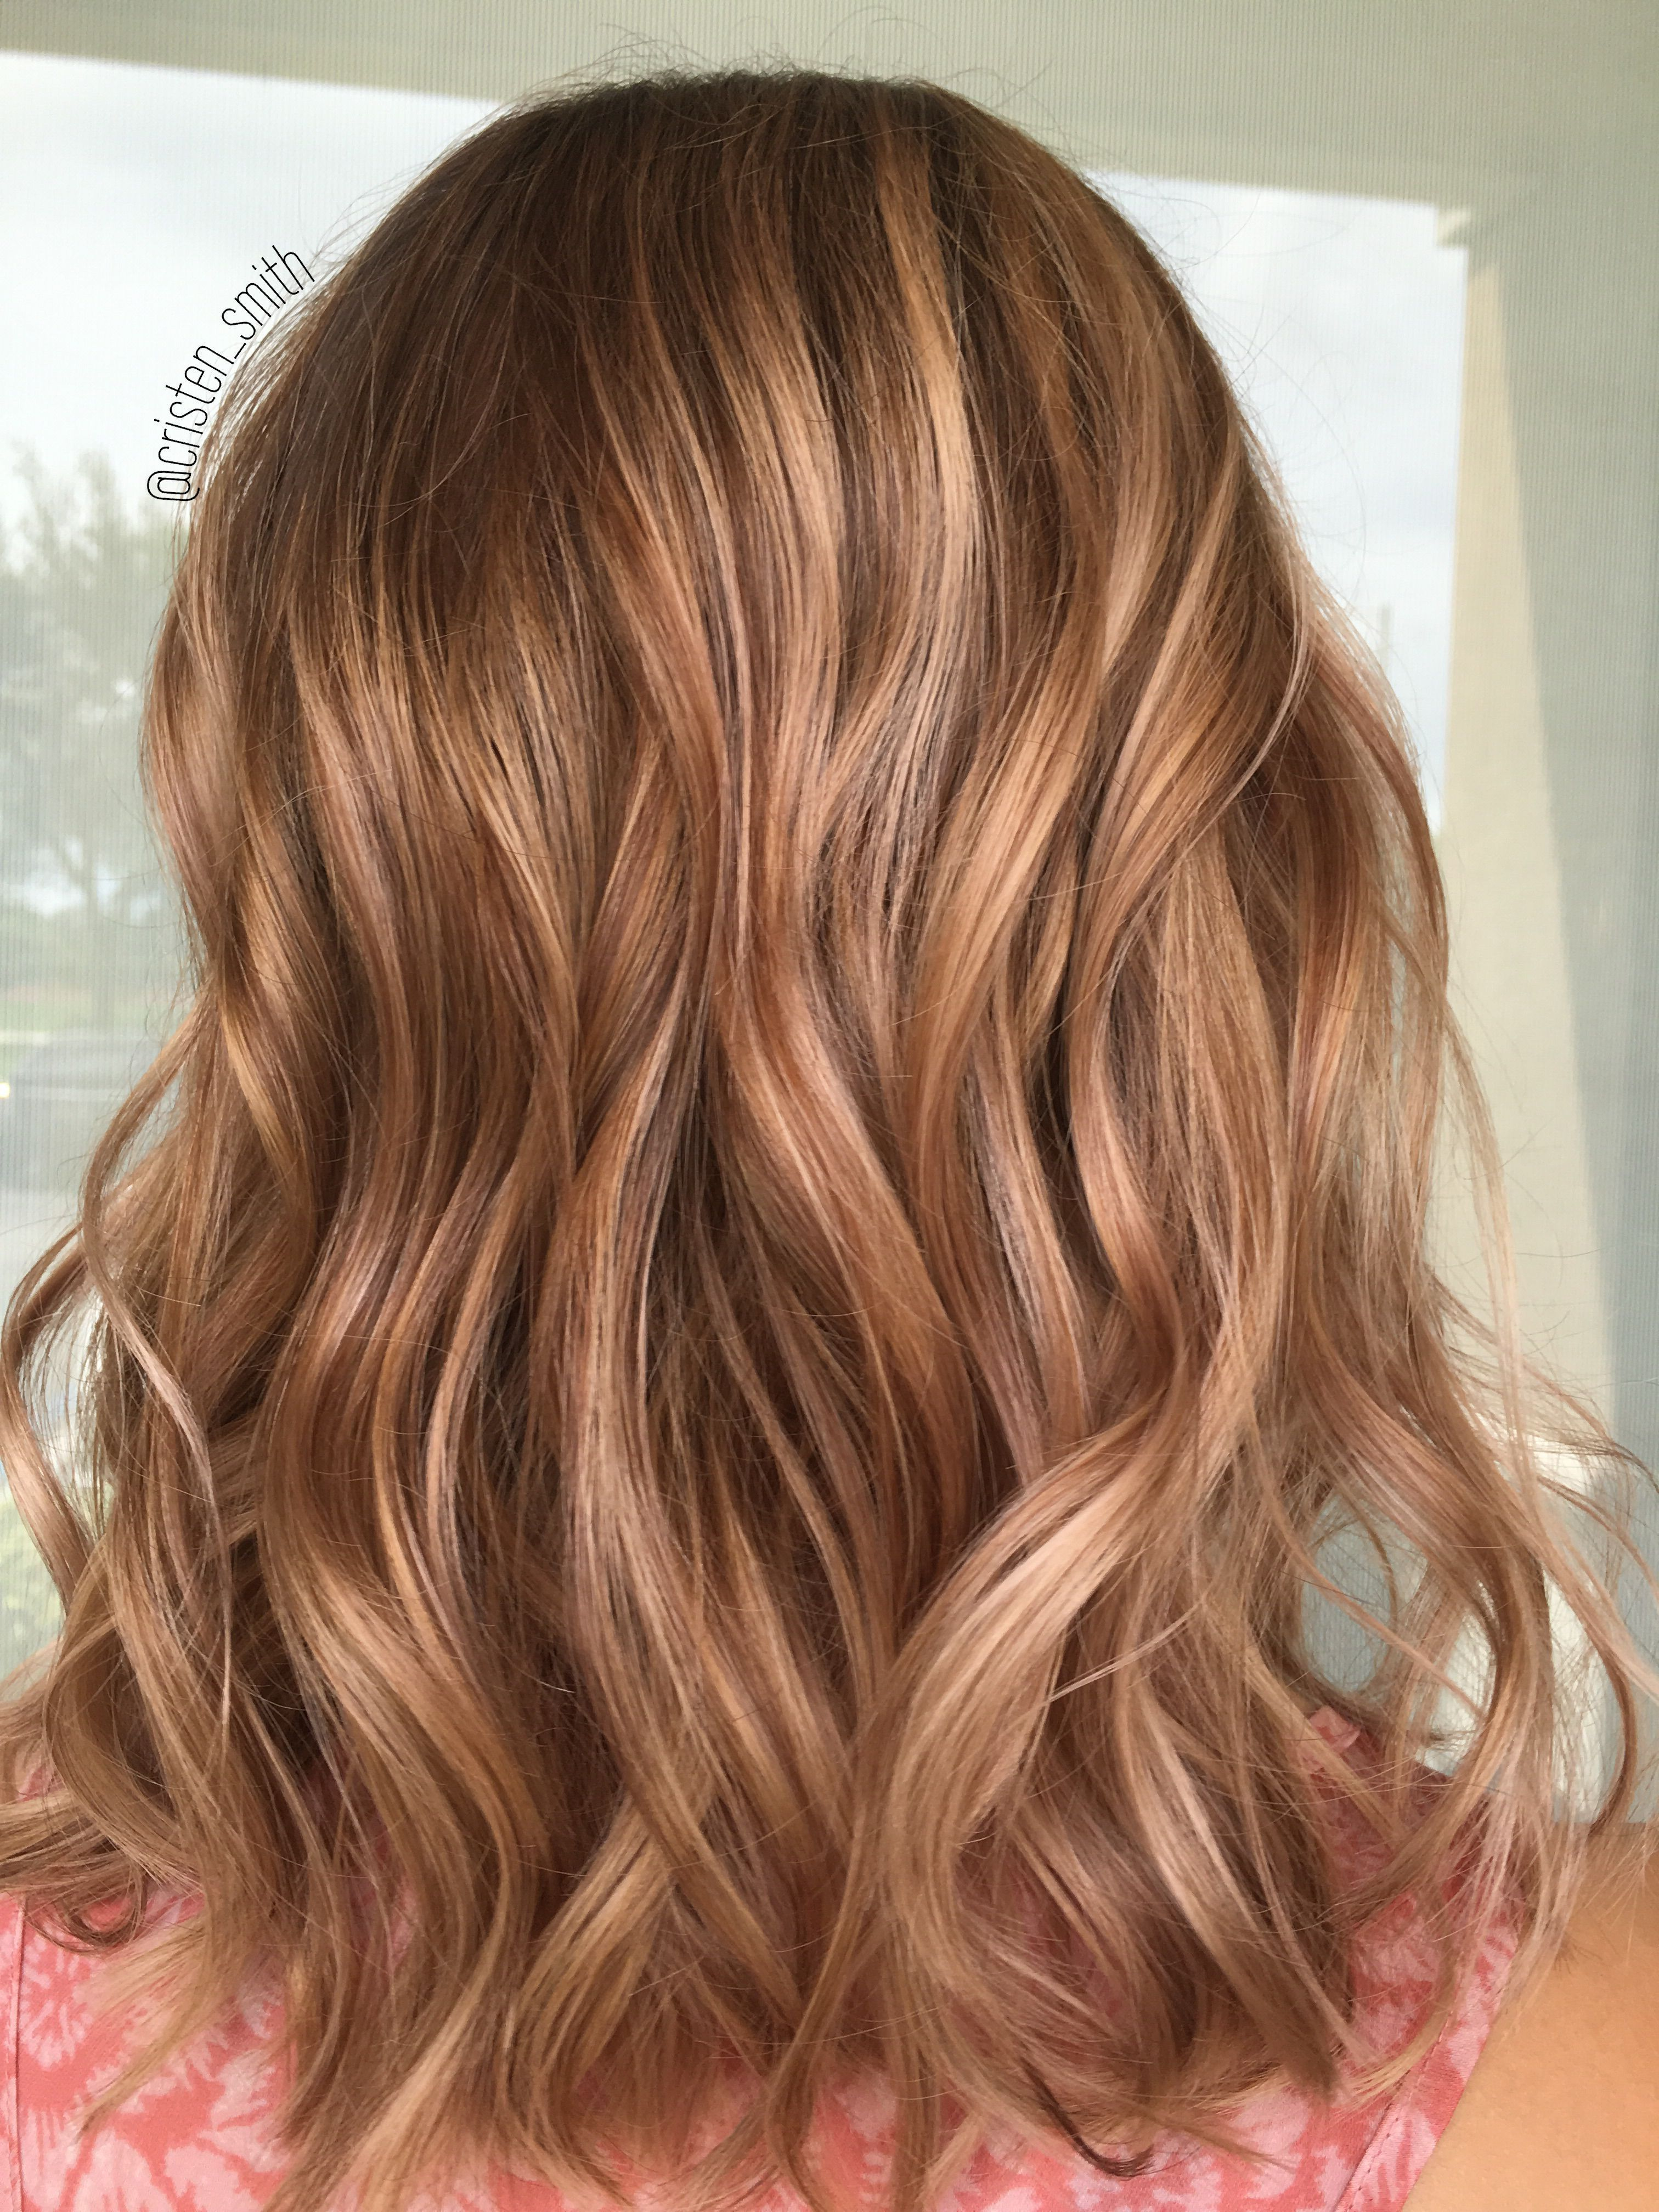 Image Result For Images Of Balayage Hair With Brown Hair Caramel